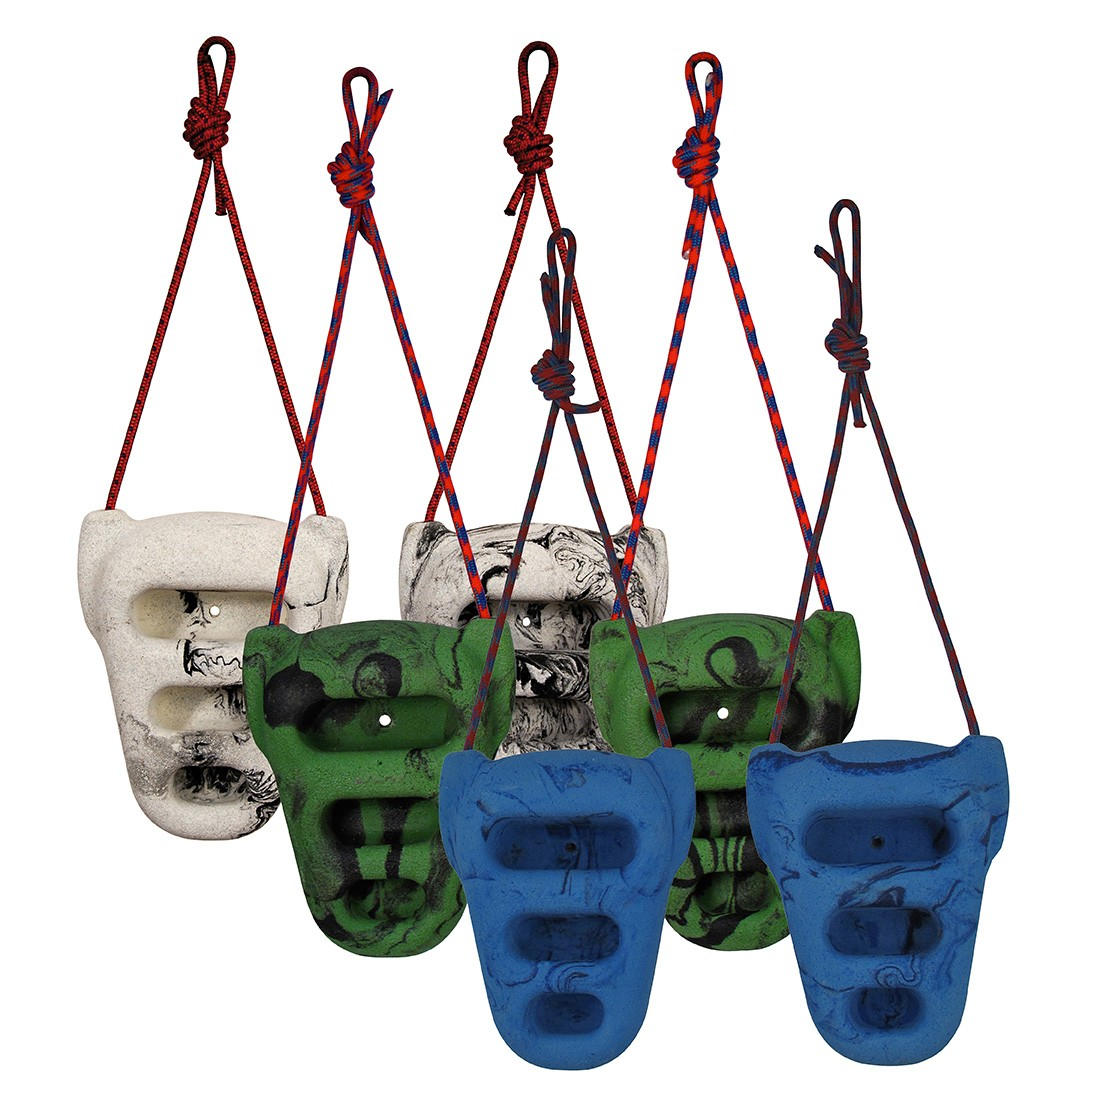 Metolius Rock Rings 3D - Climbing training holds